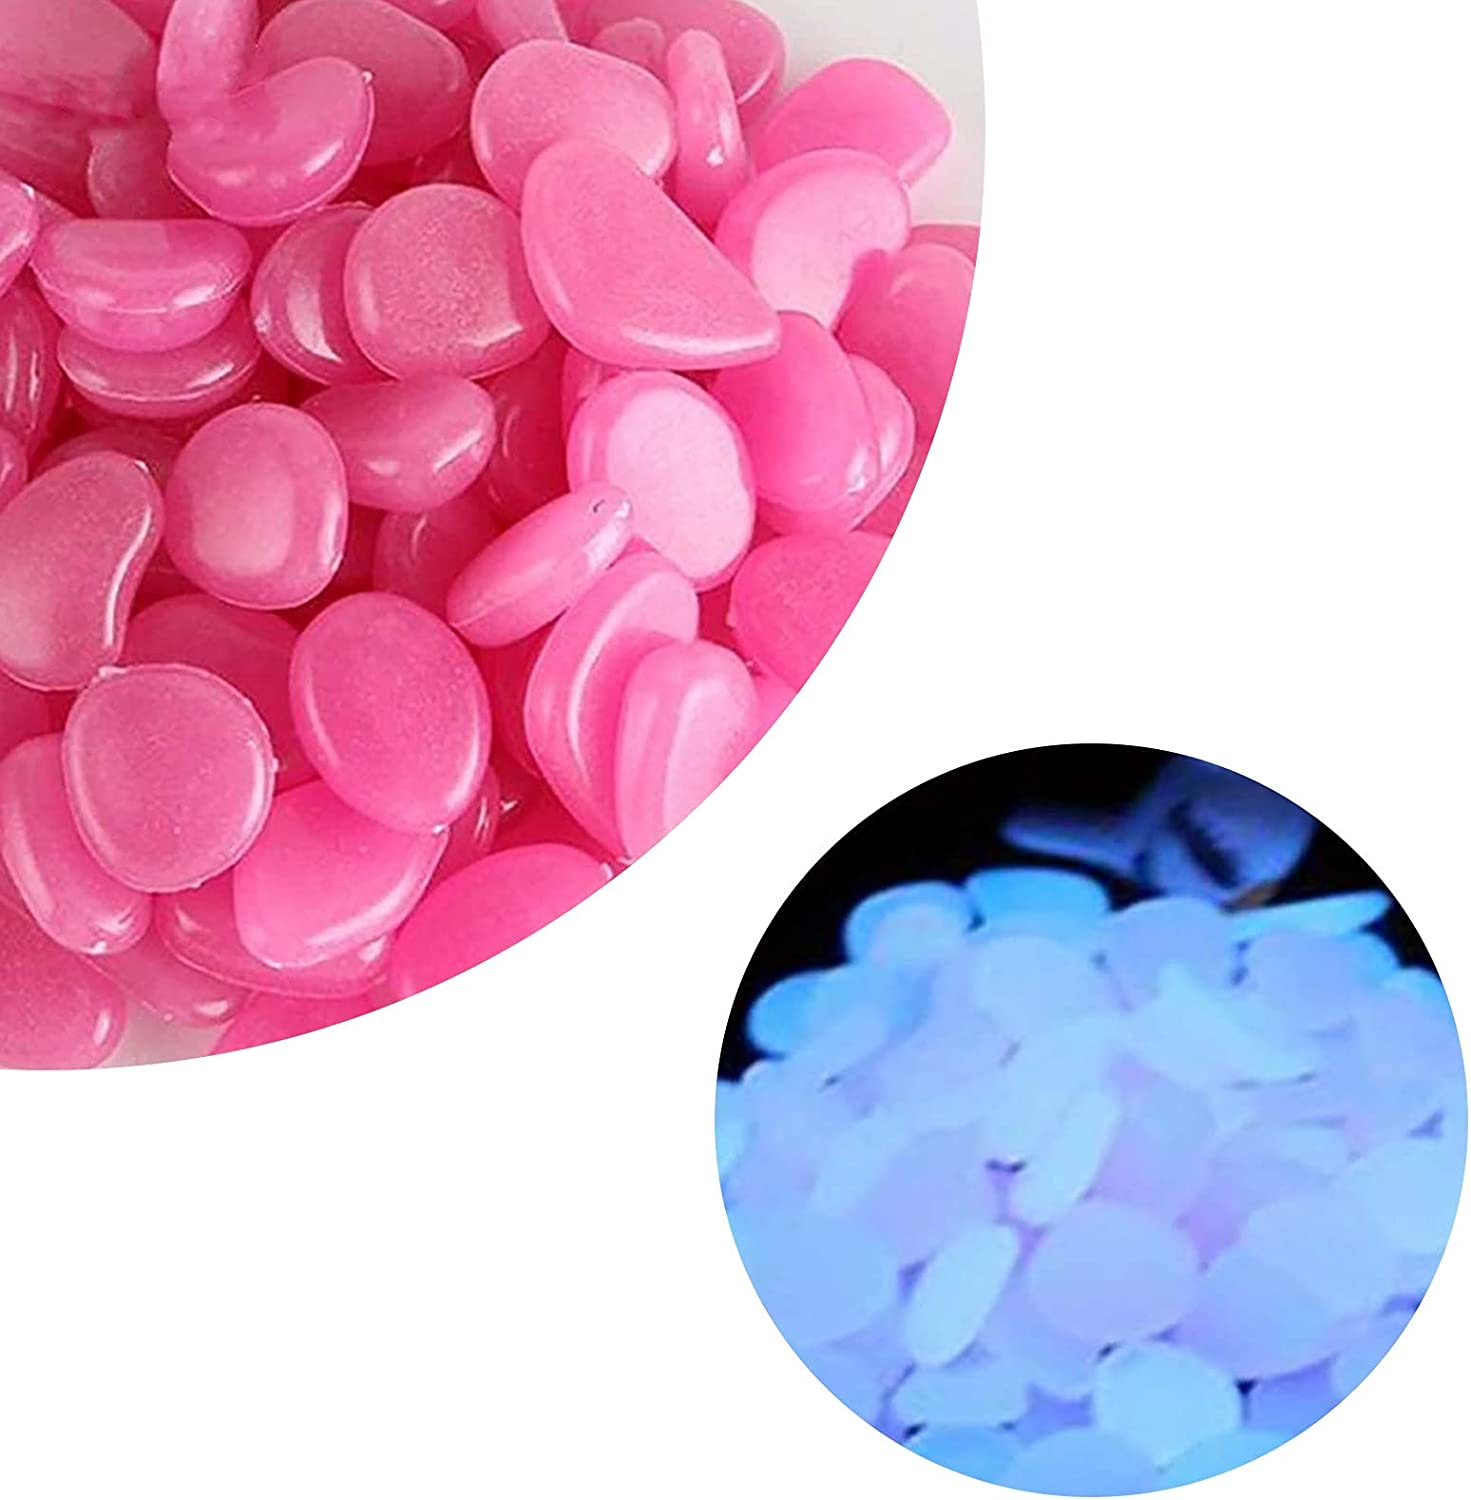 LLONG Glow in The Dark Sales for sale Rocks a by 2021 model Pebbles Light Glowing Powered